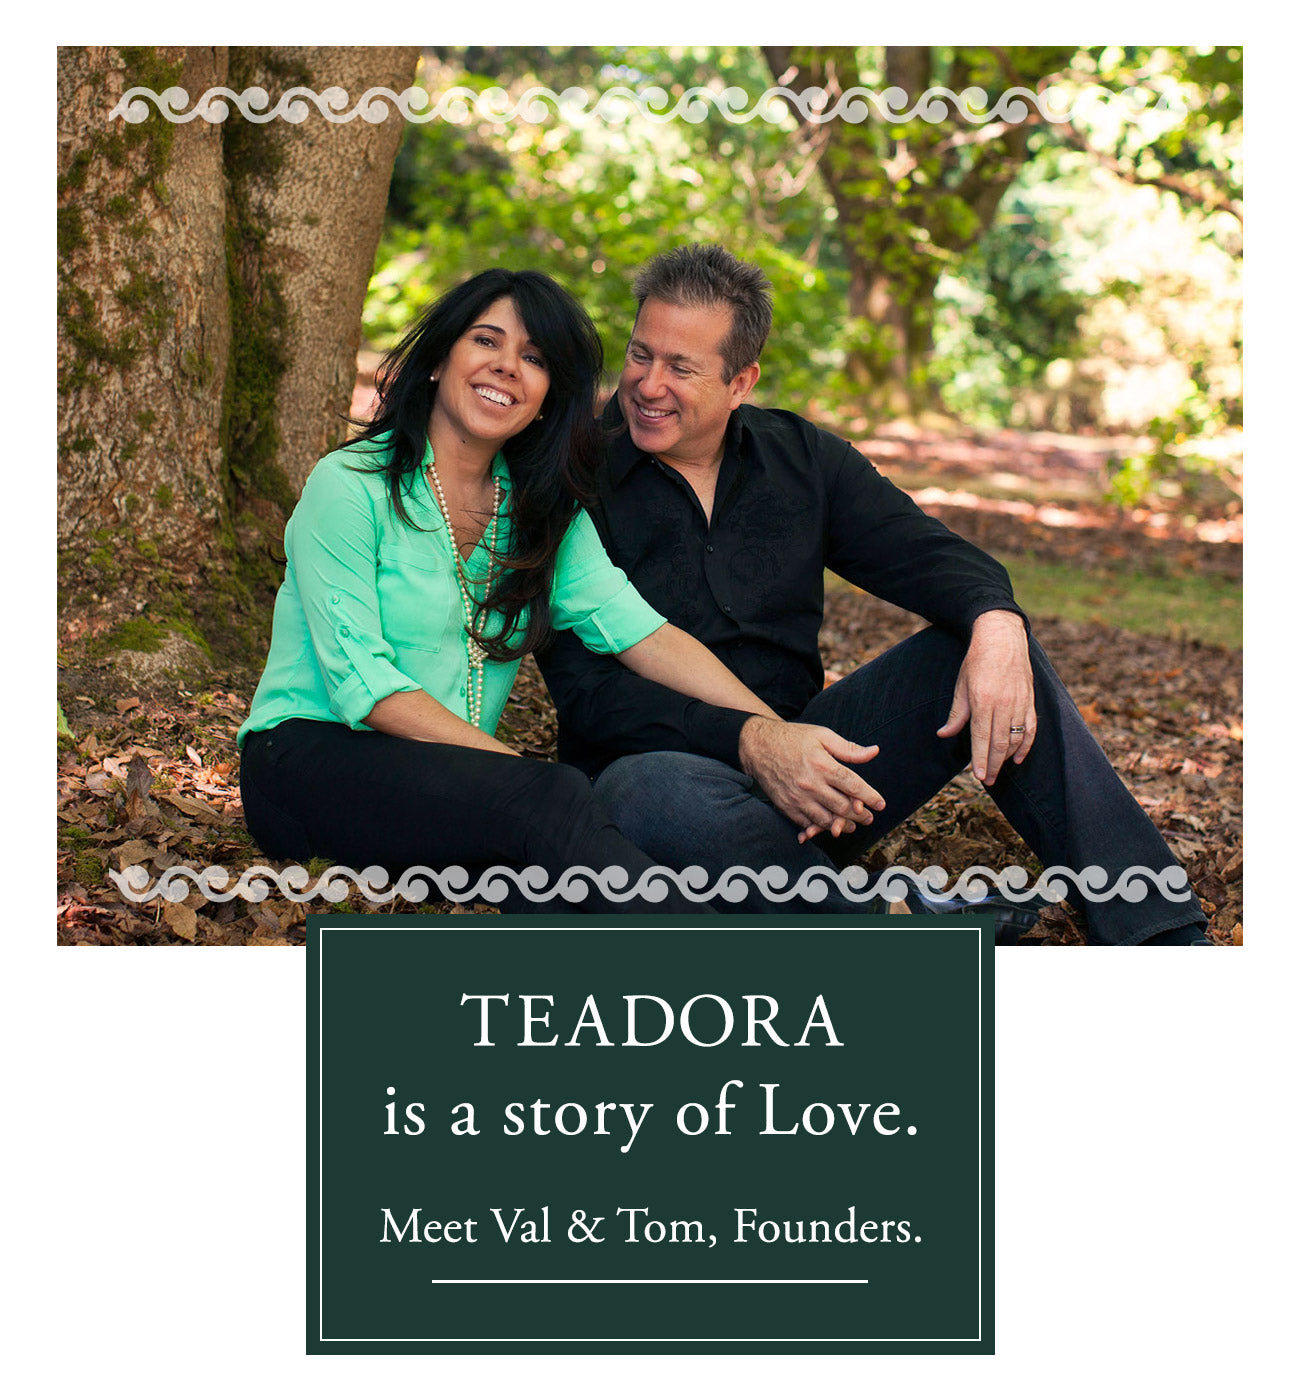 Teadora is a story of Love. Meet Val and Tom, Founders